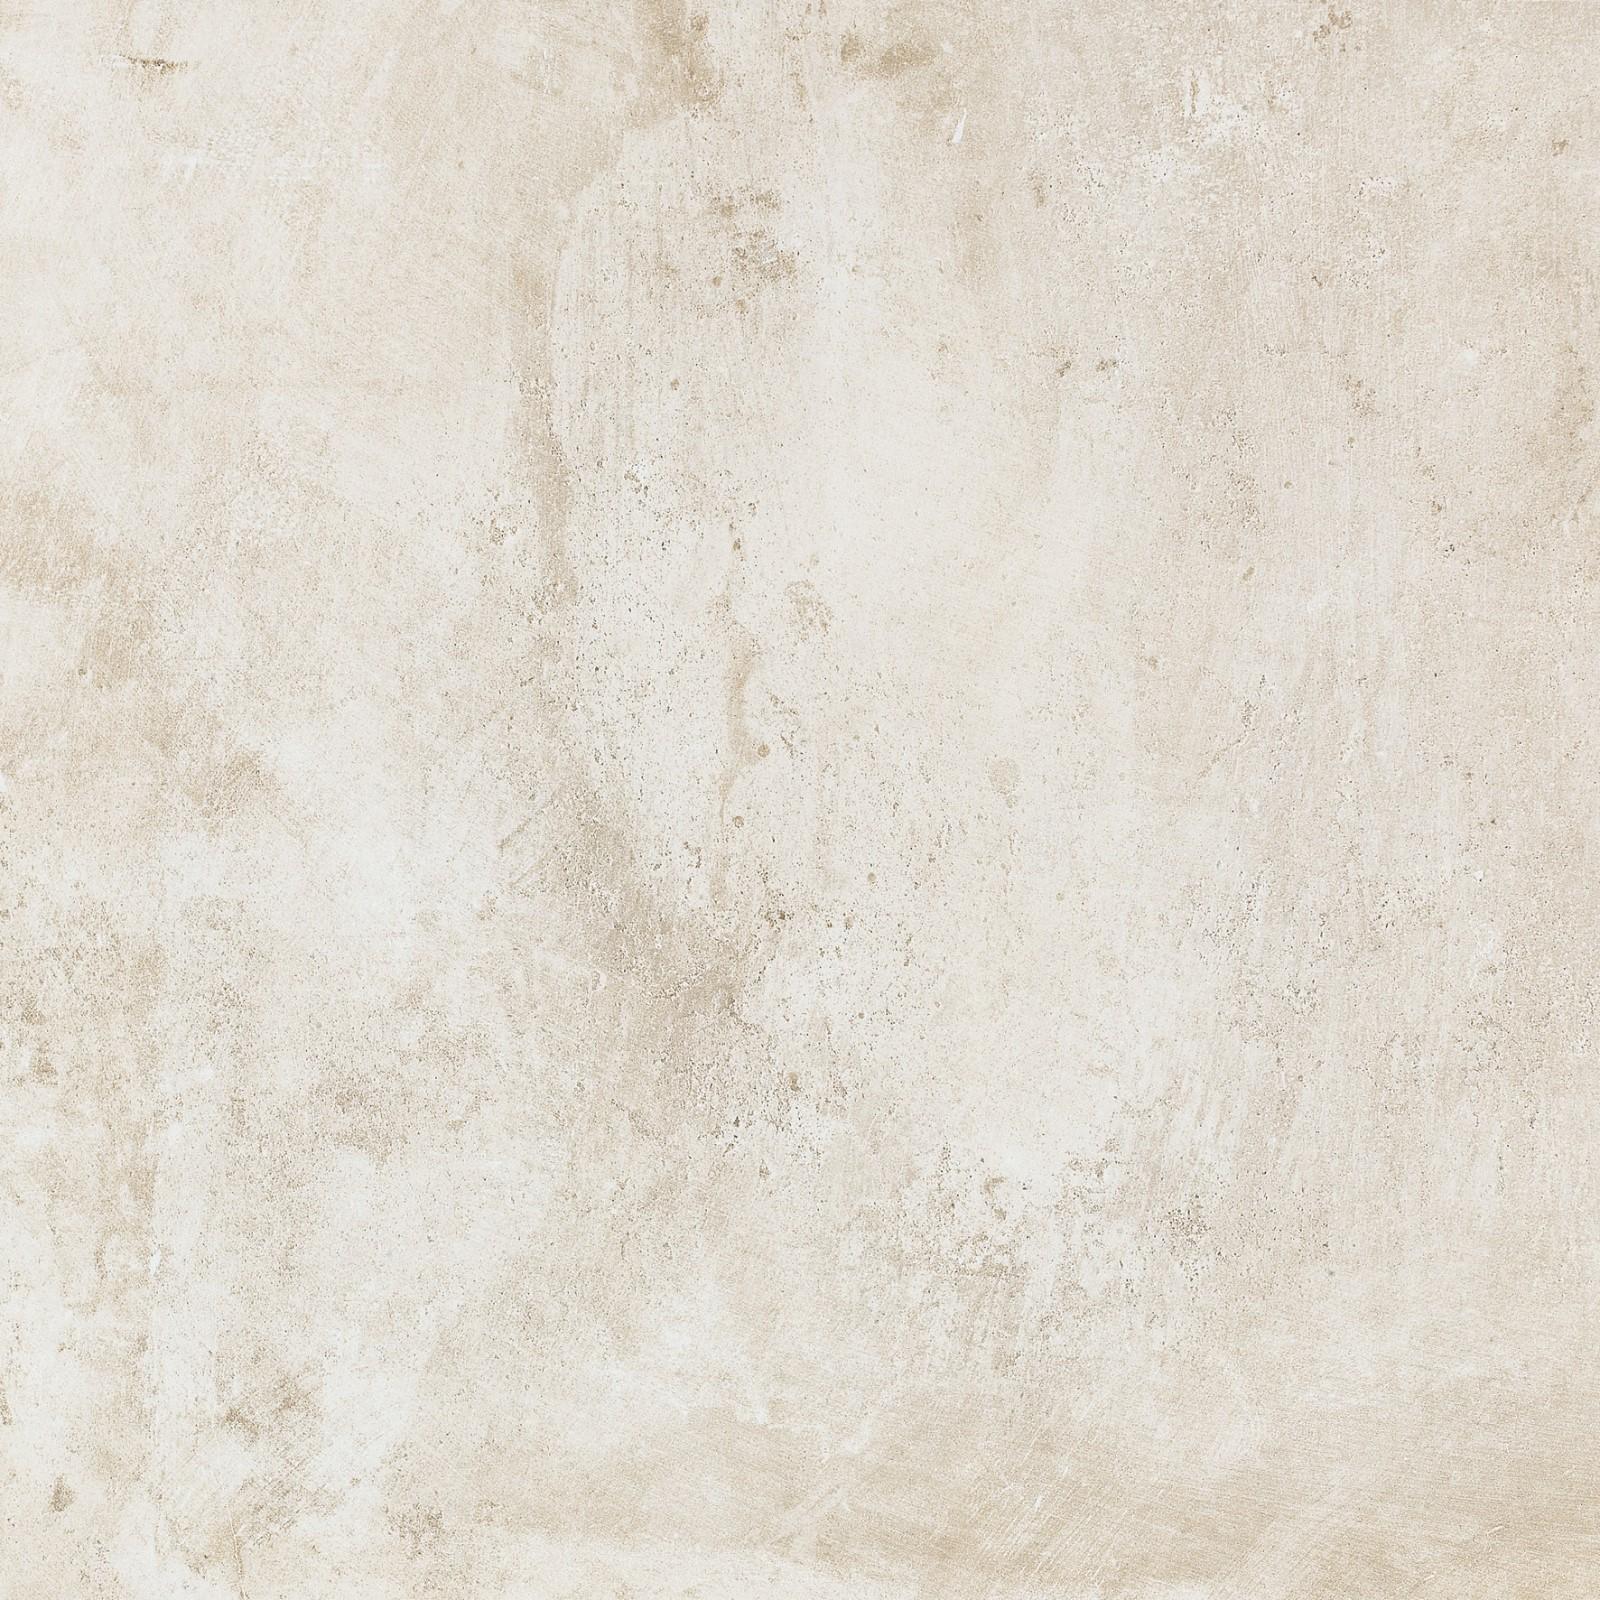 Overland strong cement tiles india tiles for apartment-2